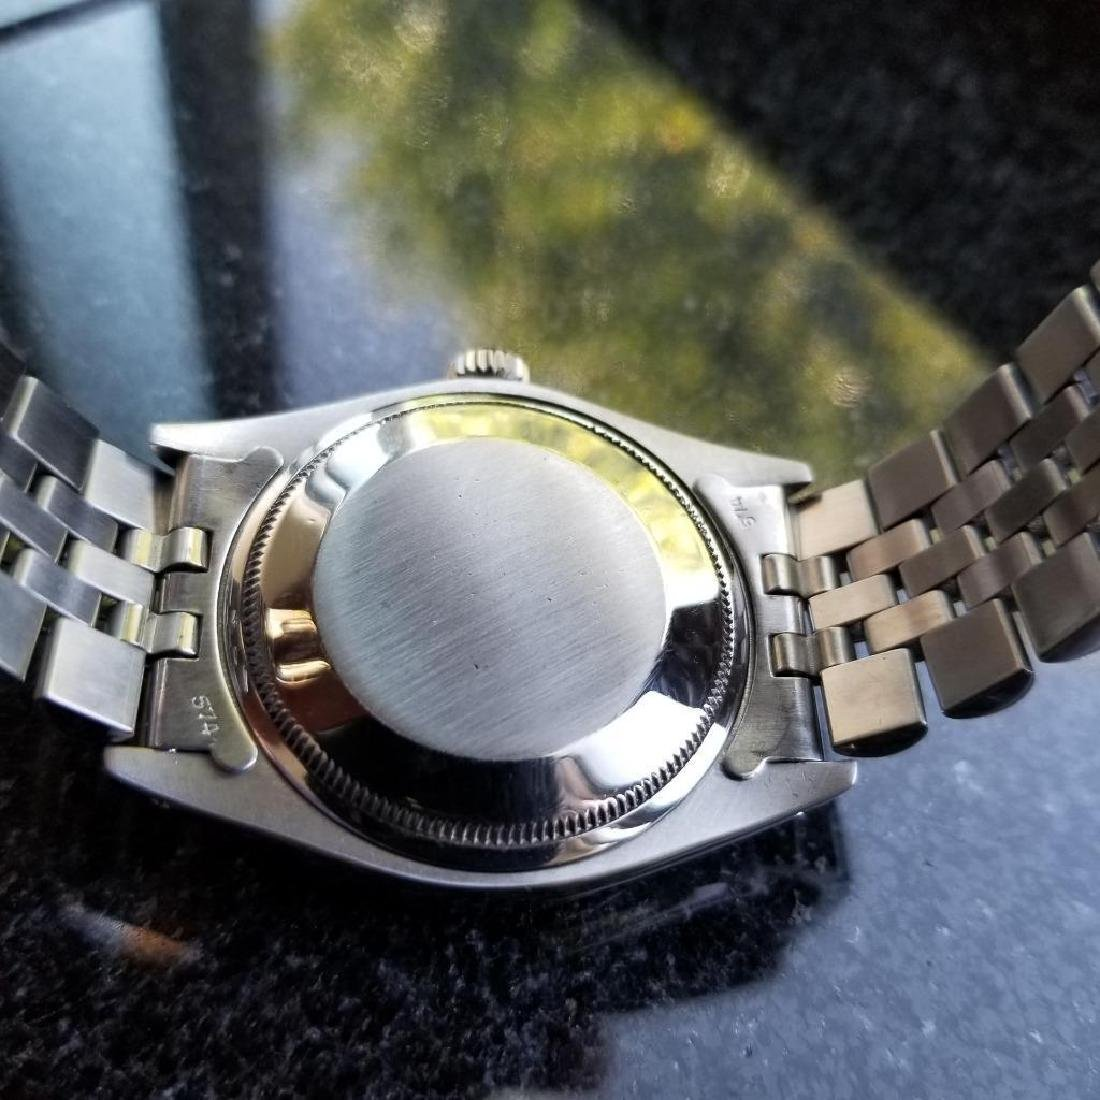 Rolex Oyster Perpetual 1501 Date Vintage 1977 Auto 35mm - 8